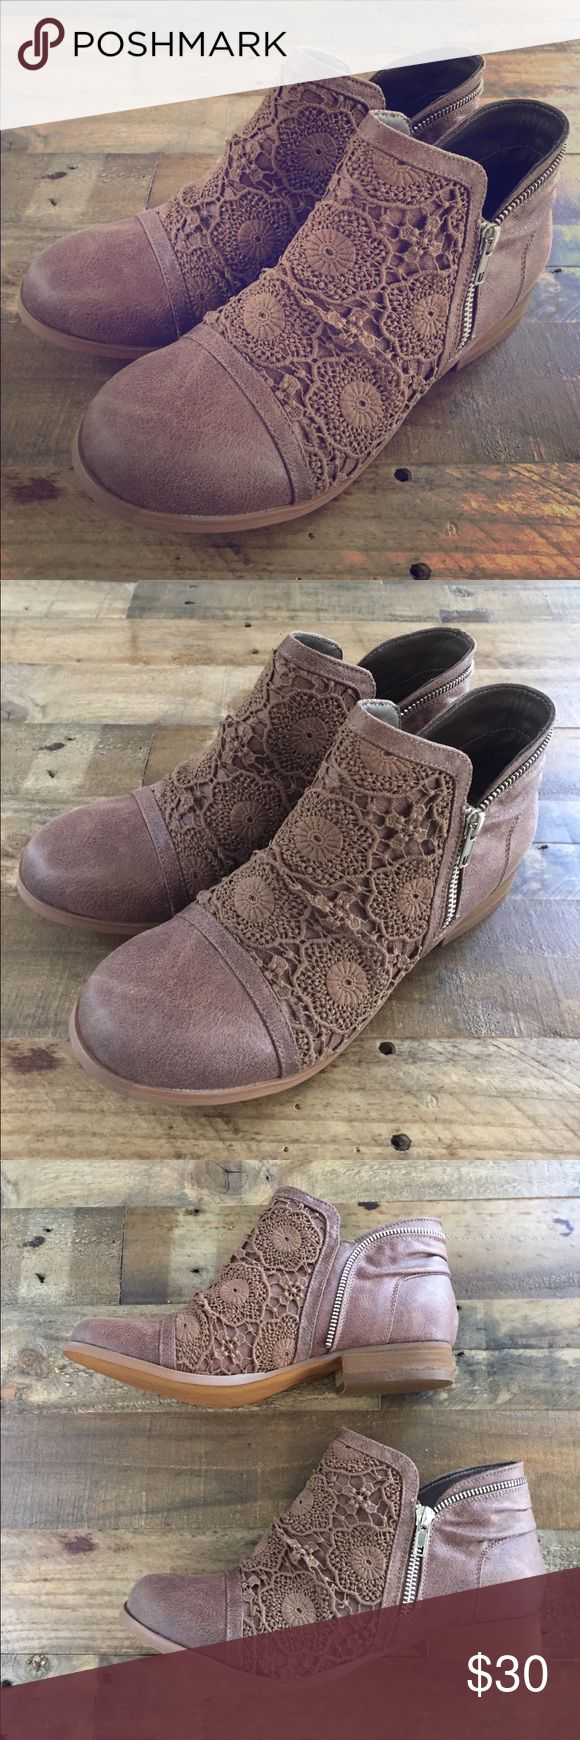 Not Rated Dark Brown Lace Ankle Boots Shoes 9 New with box Not Rated Shoes Ankle Boots & Booties